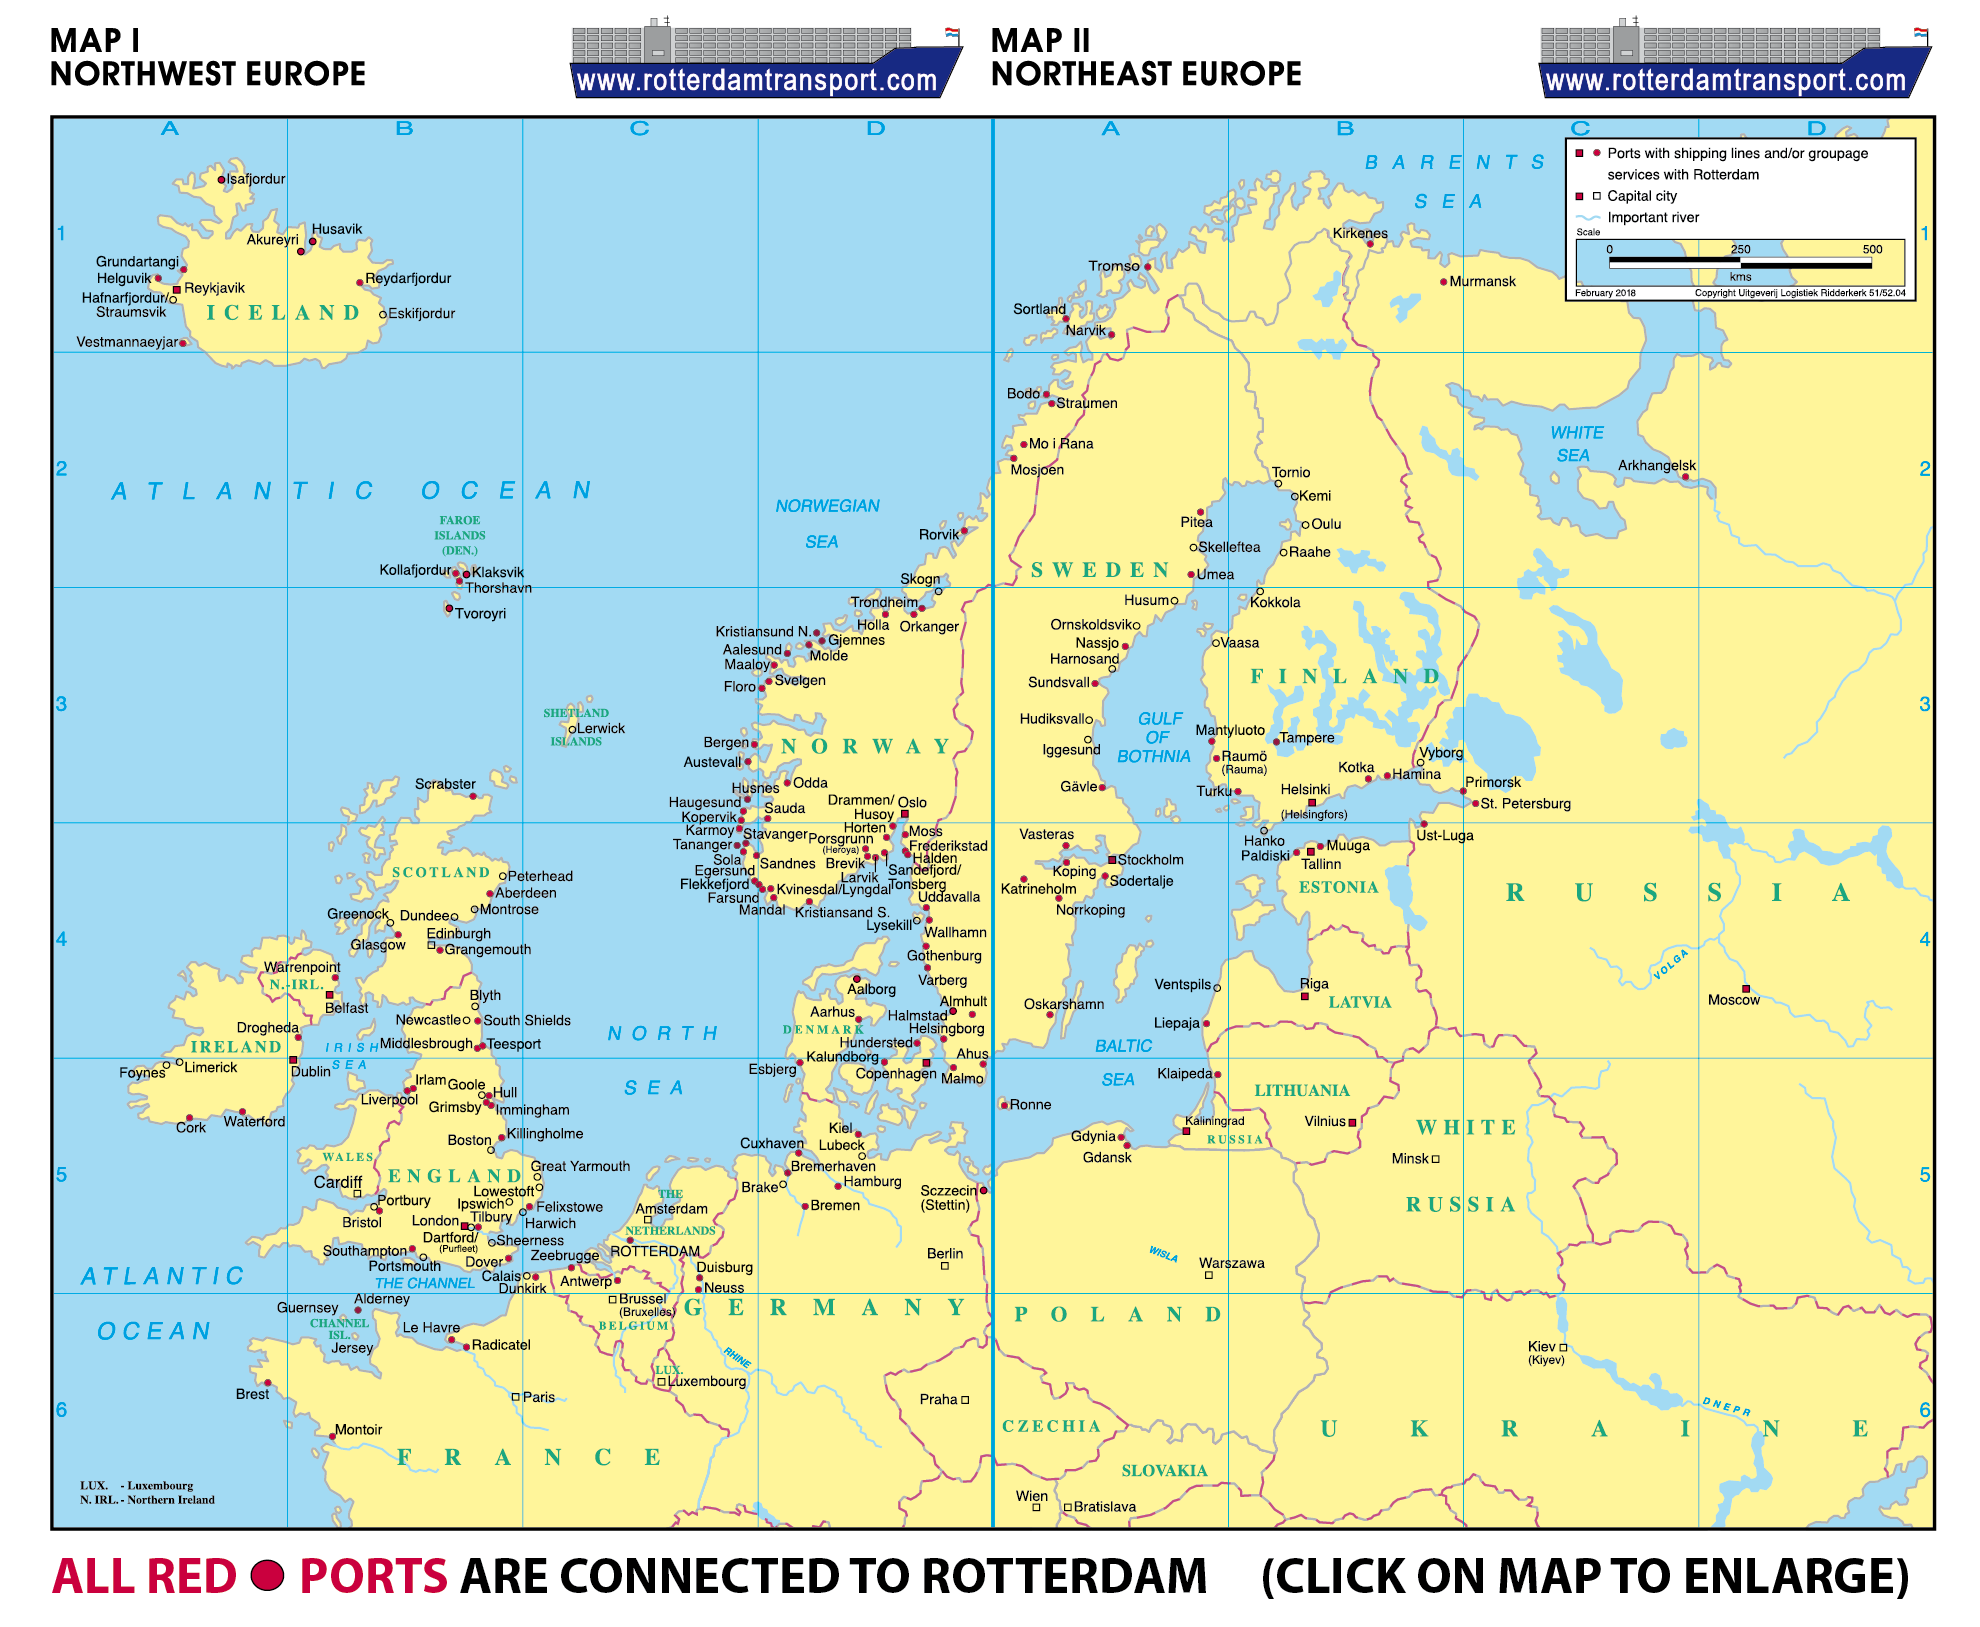 www.rotterdamtransport.com - world port maps on detailed map of europe, google earth map of europe, crete on a map of europe, latest map of europe, the physical map of europe, full screen map of europe, downloadable map of europe, complete map of europe, clear map of europe, line map of europe, war map of europe, need map of europe, study map of europe, printable blank map of europe, ancient old map of europe, high resolution map of europe, london on map of europe, old world map of europe, vintage map of europe, political map of western europe,